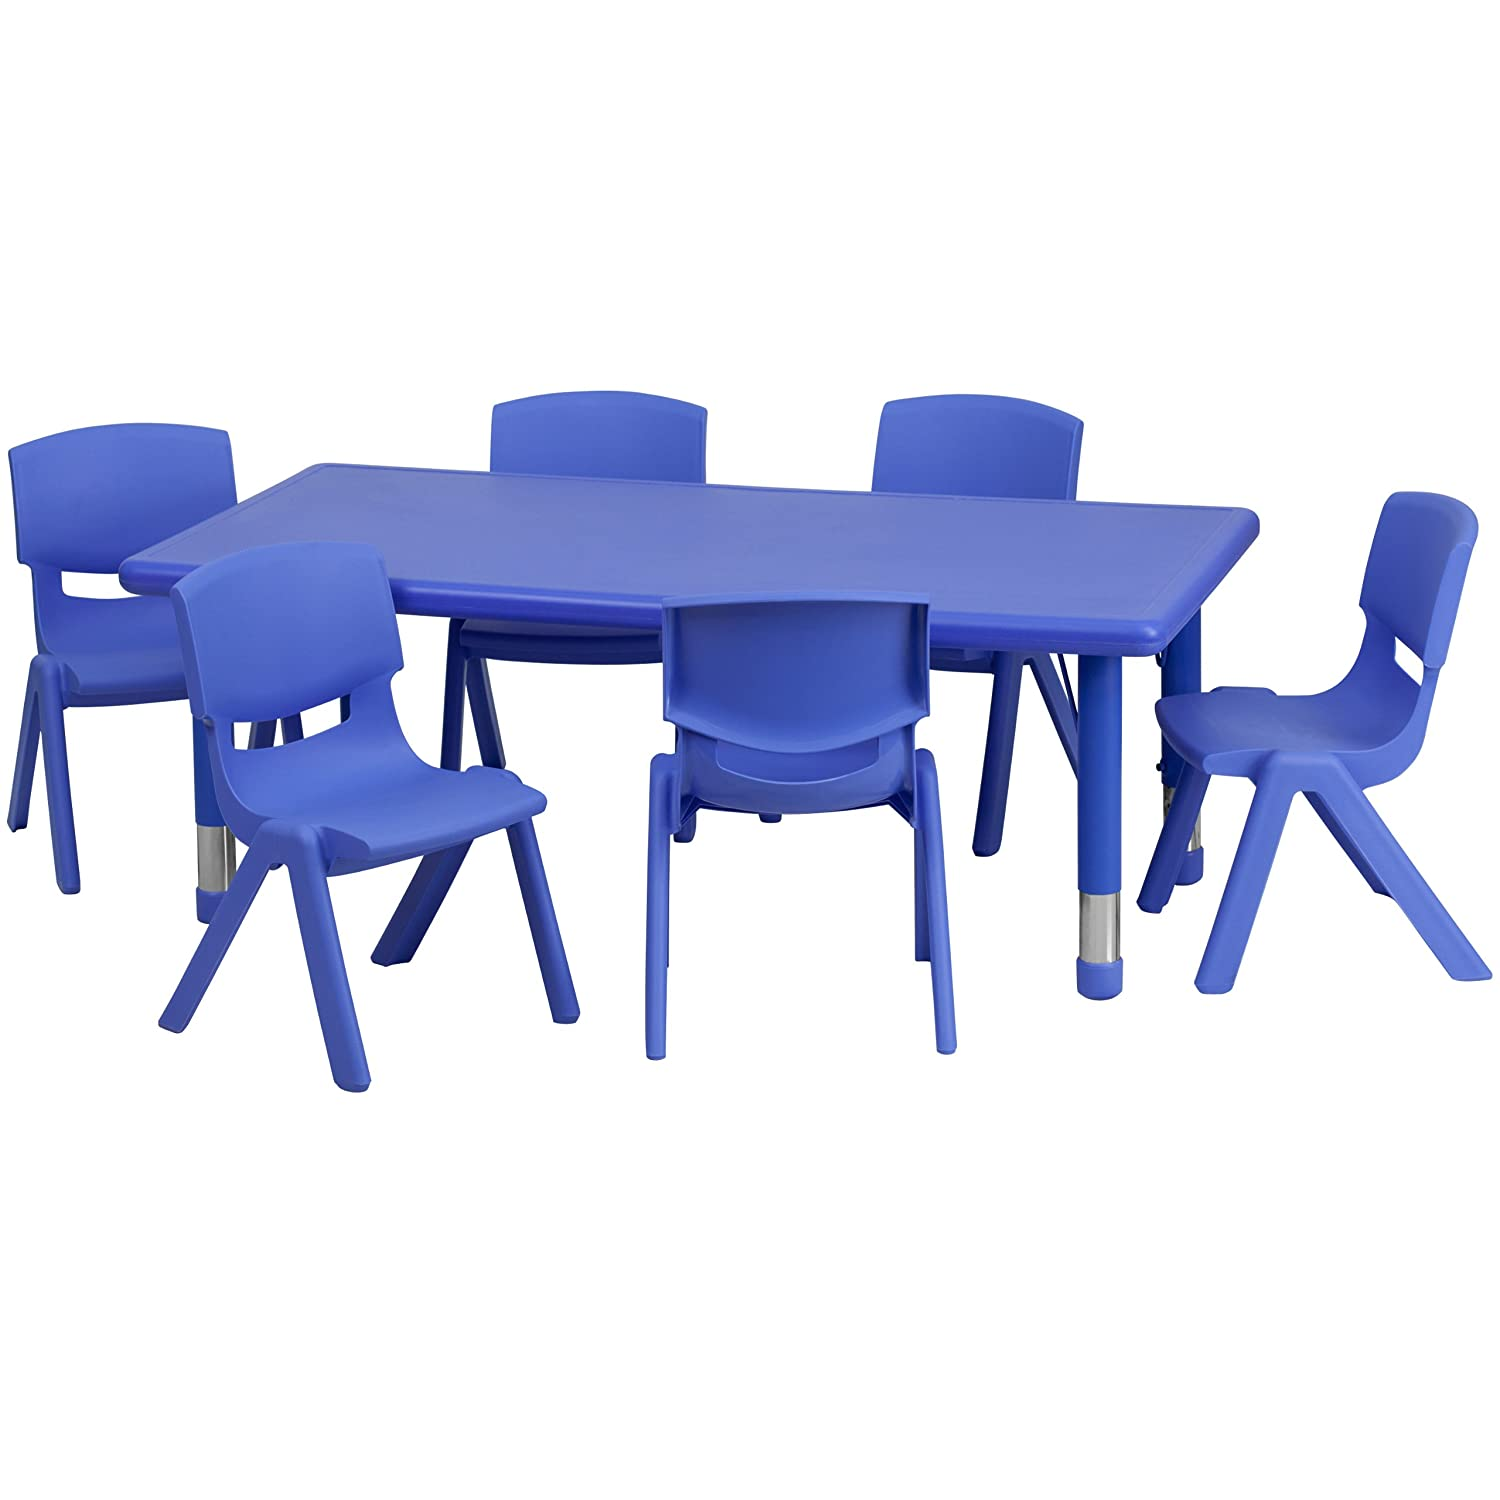 Amazon.com Flash Furniture 24u0027u0027W x 48u0027u0027L Rectangular Blue Plastic Height Adjustable Activity Table Set with 6 Chairs Kitchen u0026 Dining  sc 1 st  Amazon.com : plastic childrens table and chairs set - pezcame.com